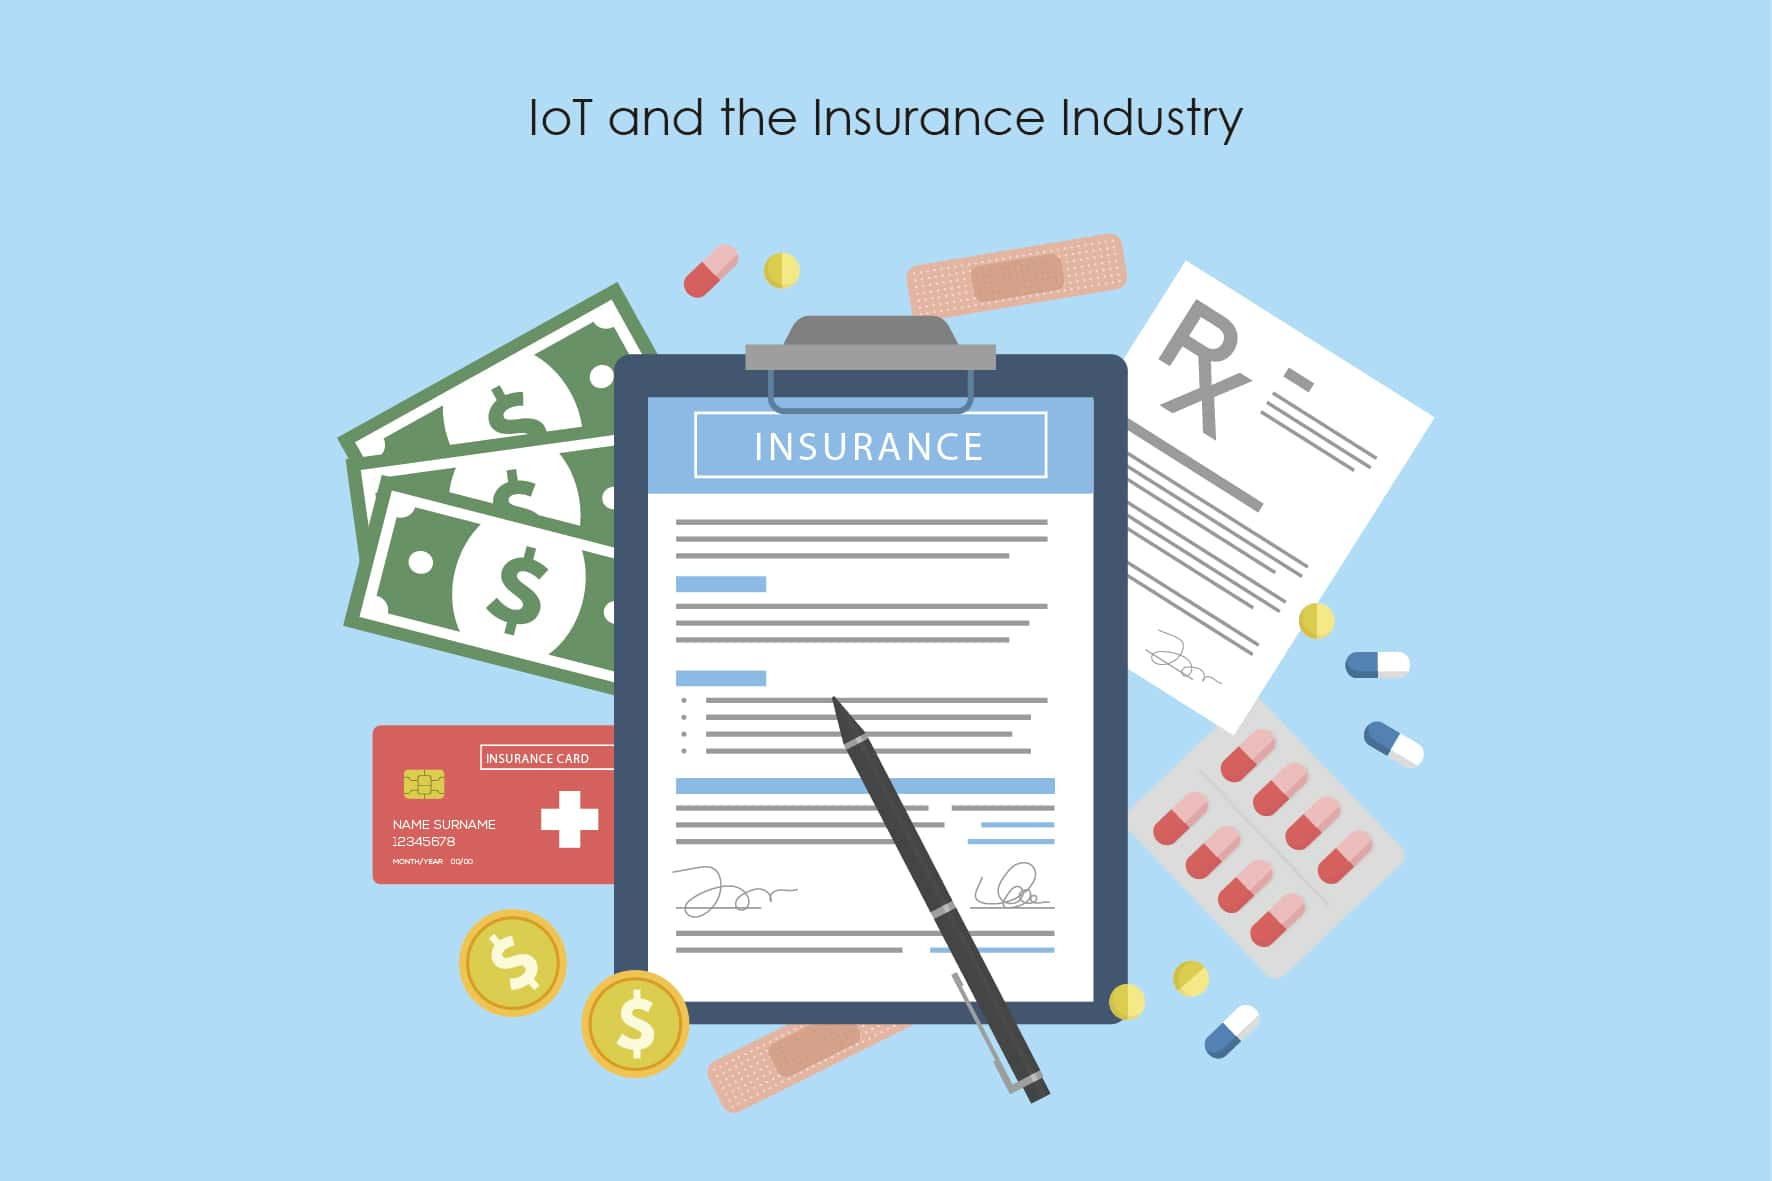 IoT and the insurance industry